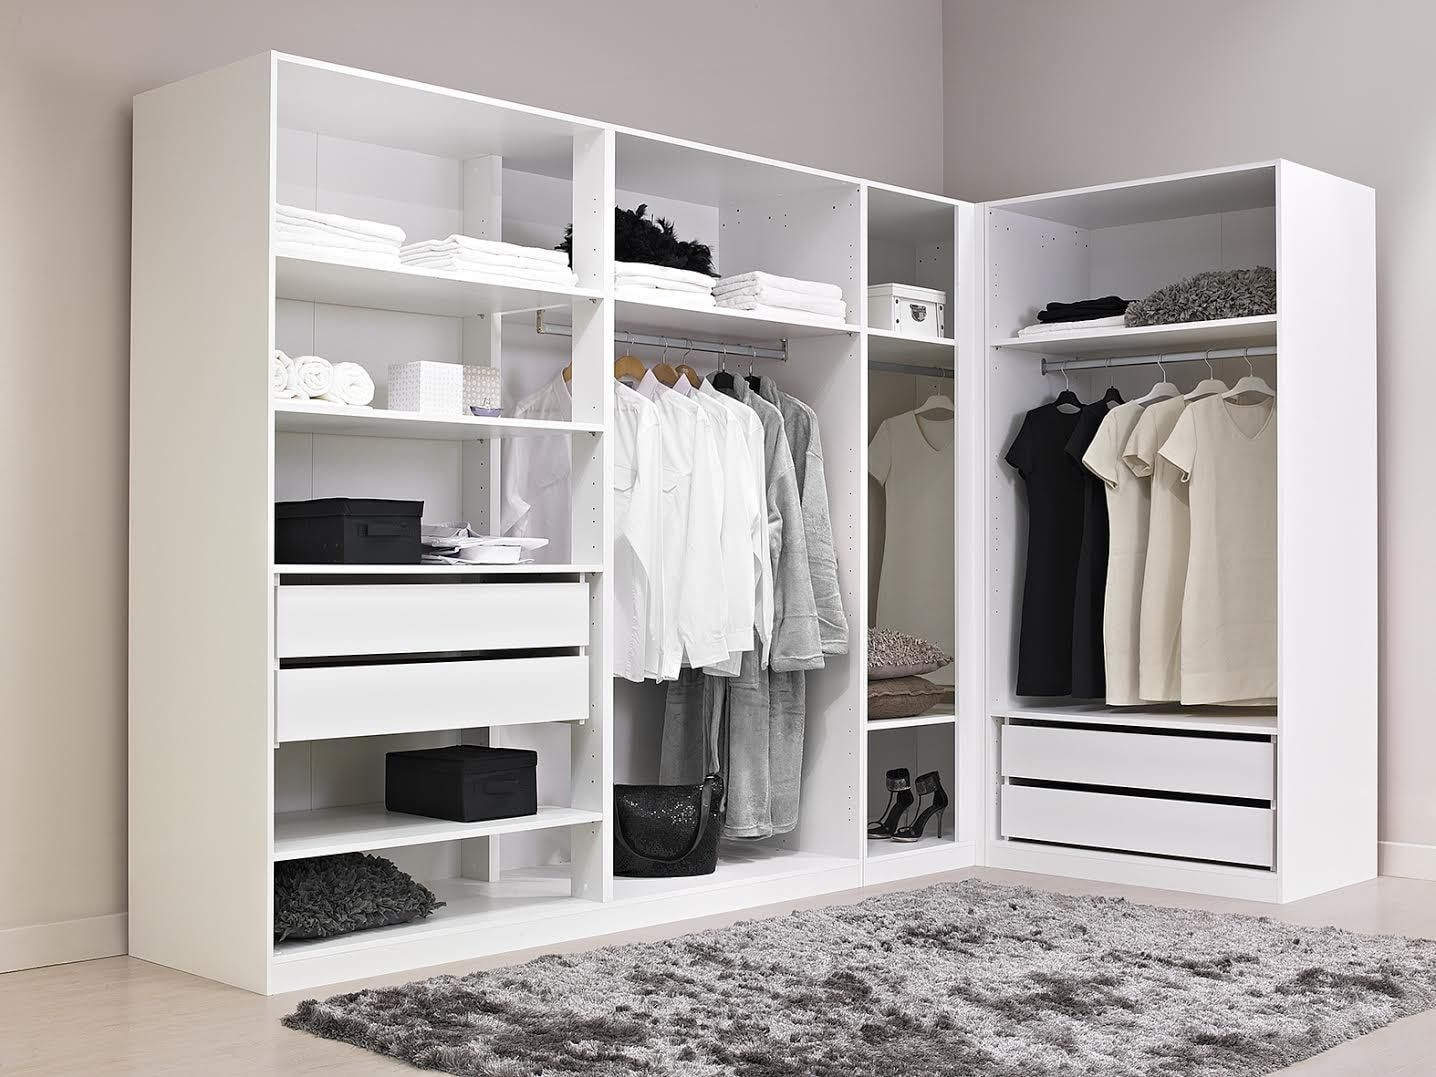 dressing d 39 angle alin a comment am nager un dressing d. Black Bedroom Furniture Sets. Home Design Ideas